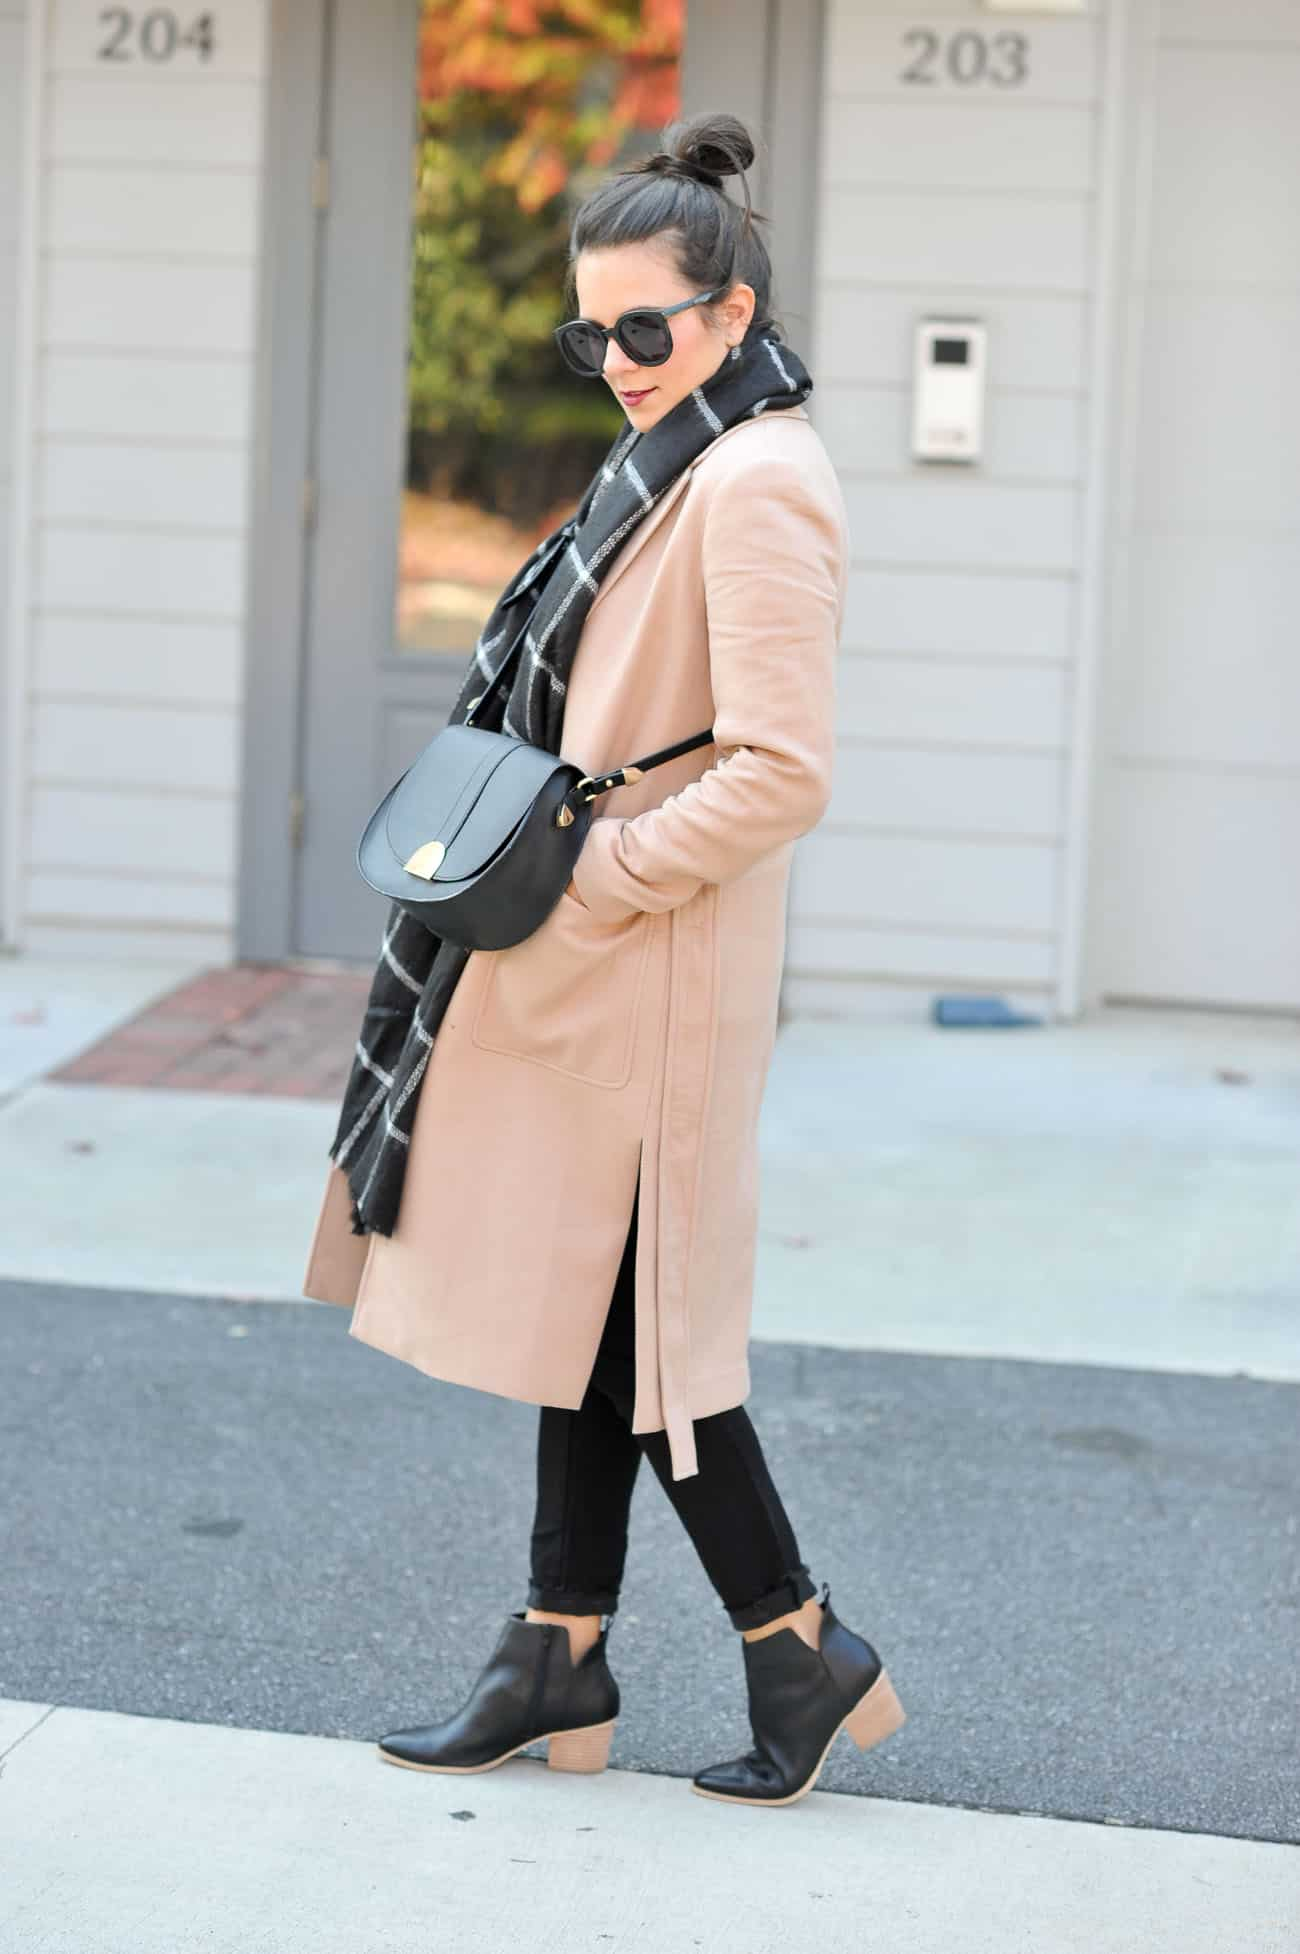 layered winter outfit ideas, ann taylor camel coat, blanket scarf - My Style Vita @mystylevita